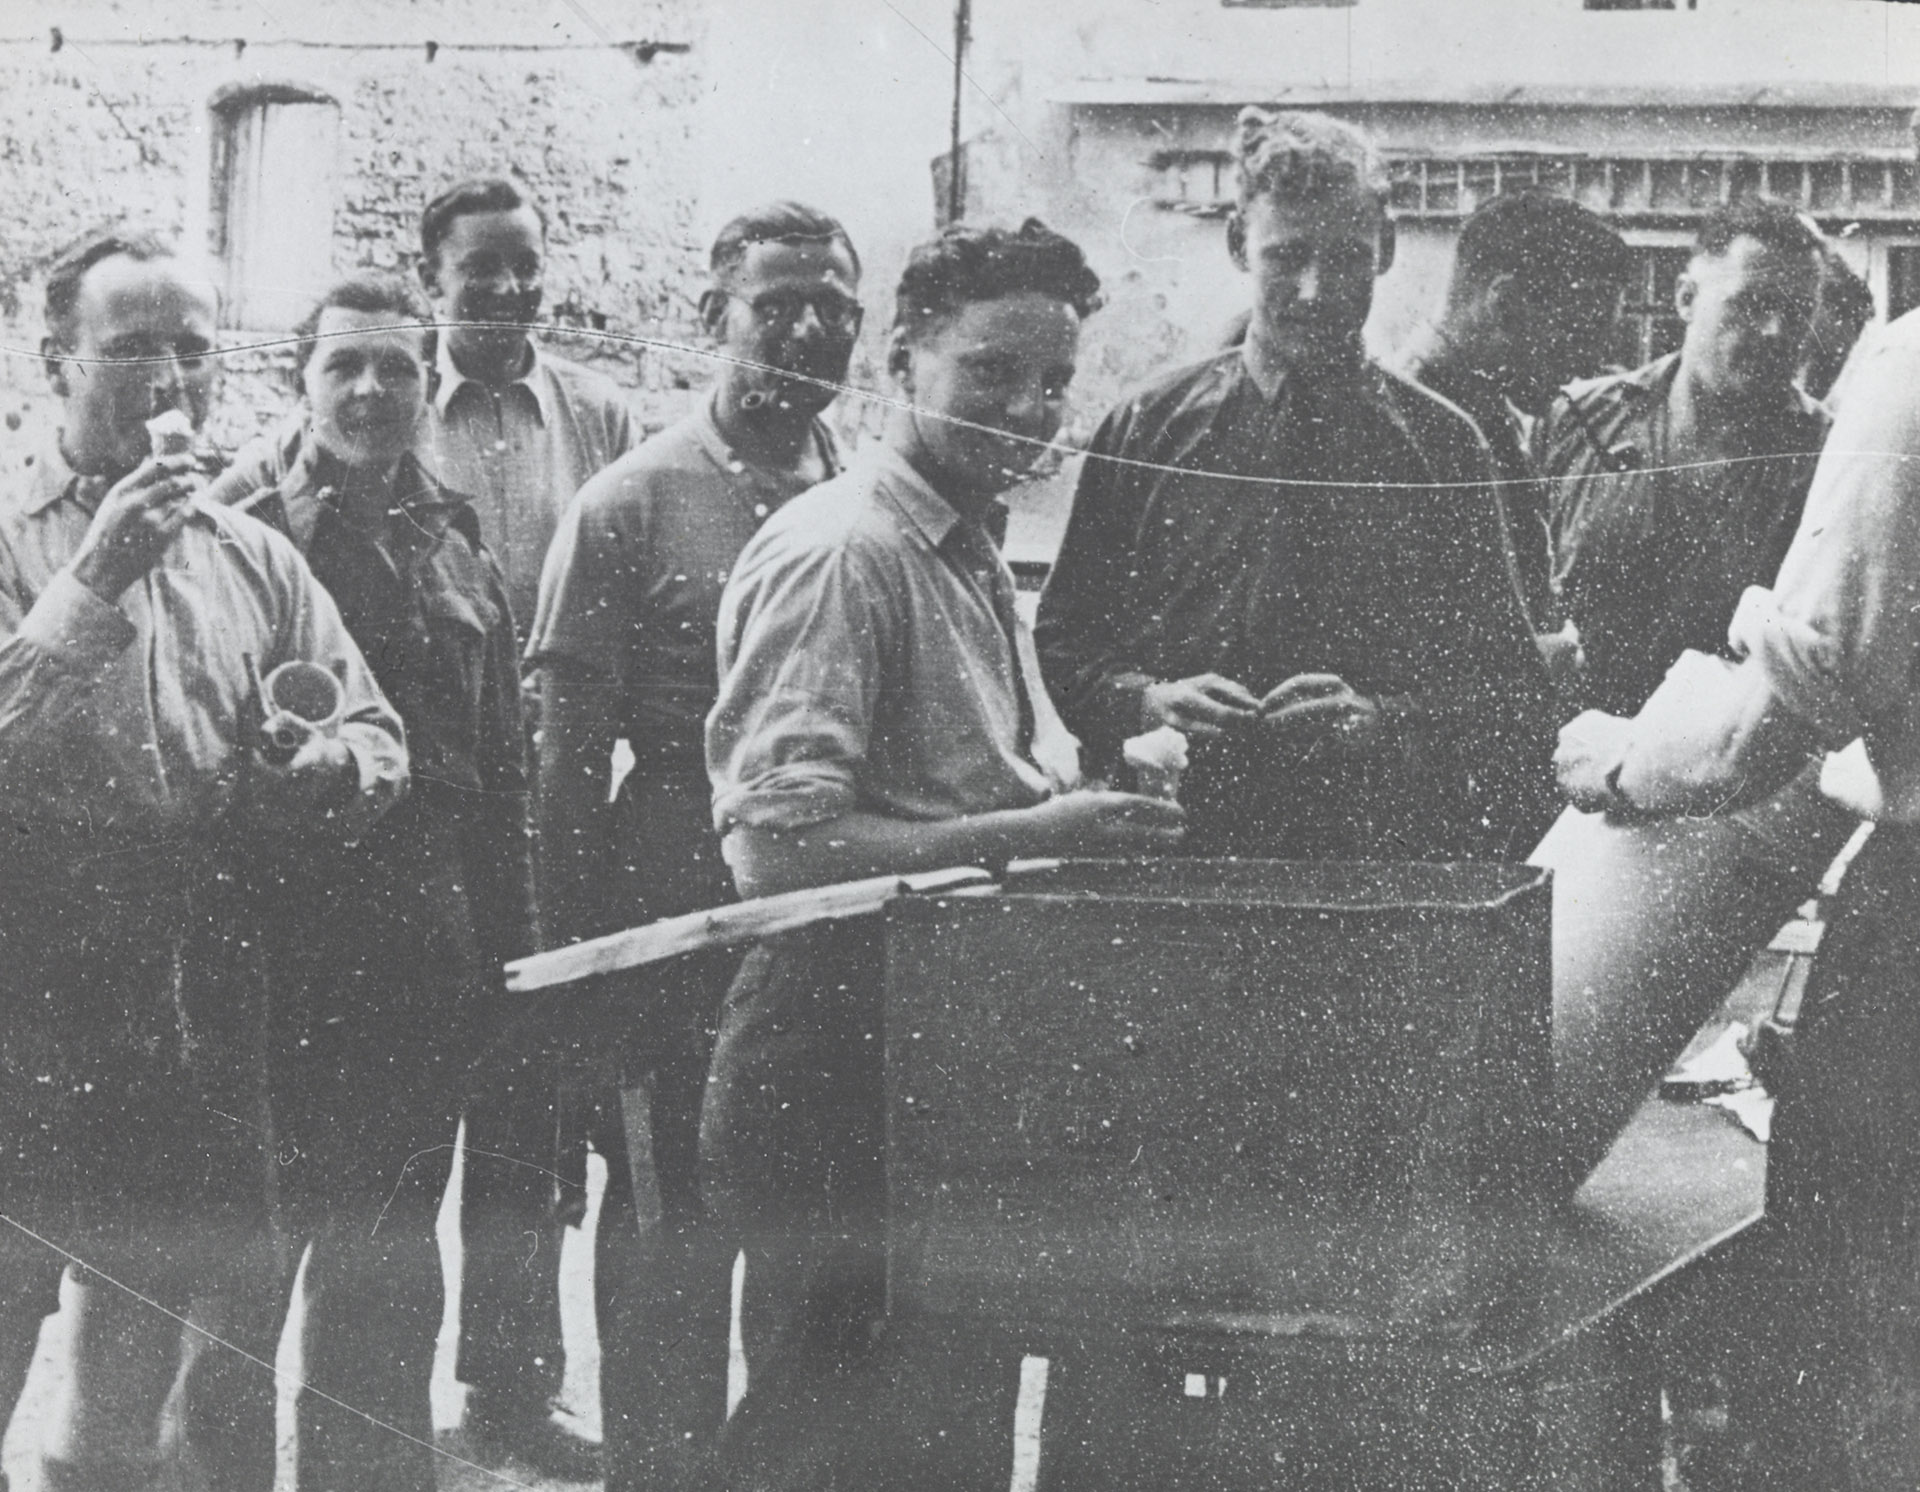 Unidentified prisoners of war camp: Group of men eating ice-cream